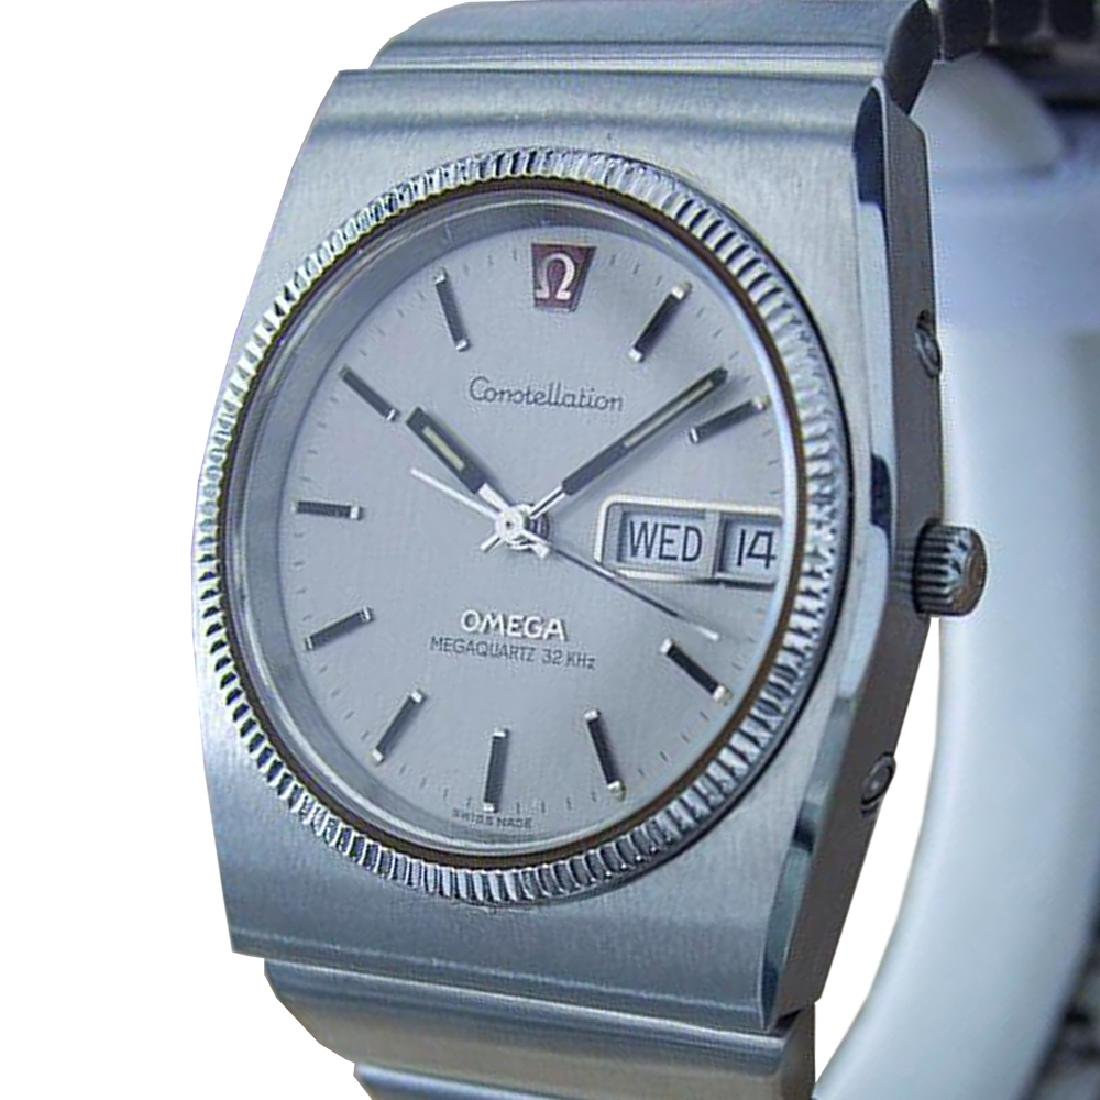 *Omega Constellation Mega Quartz Swiss Made Mens